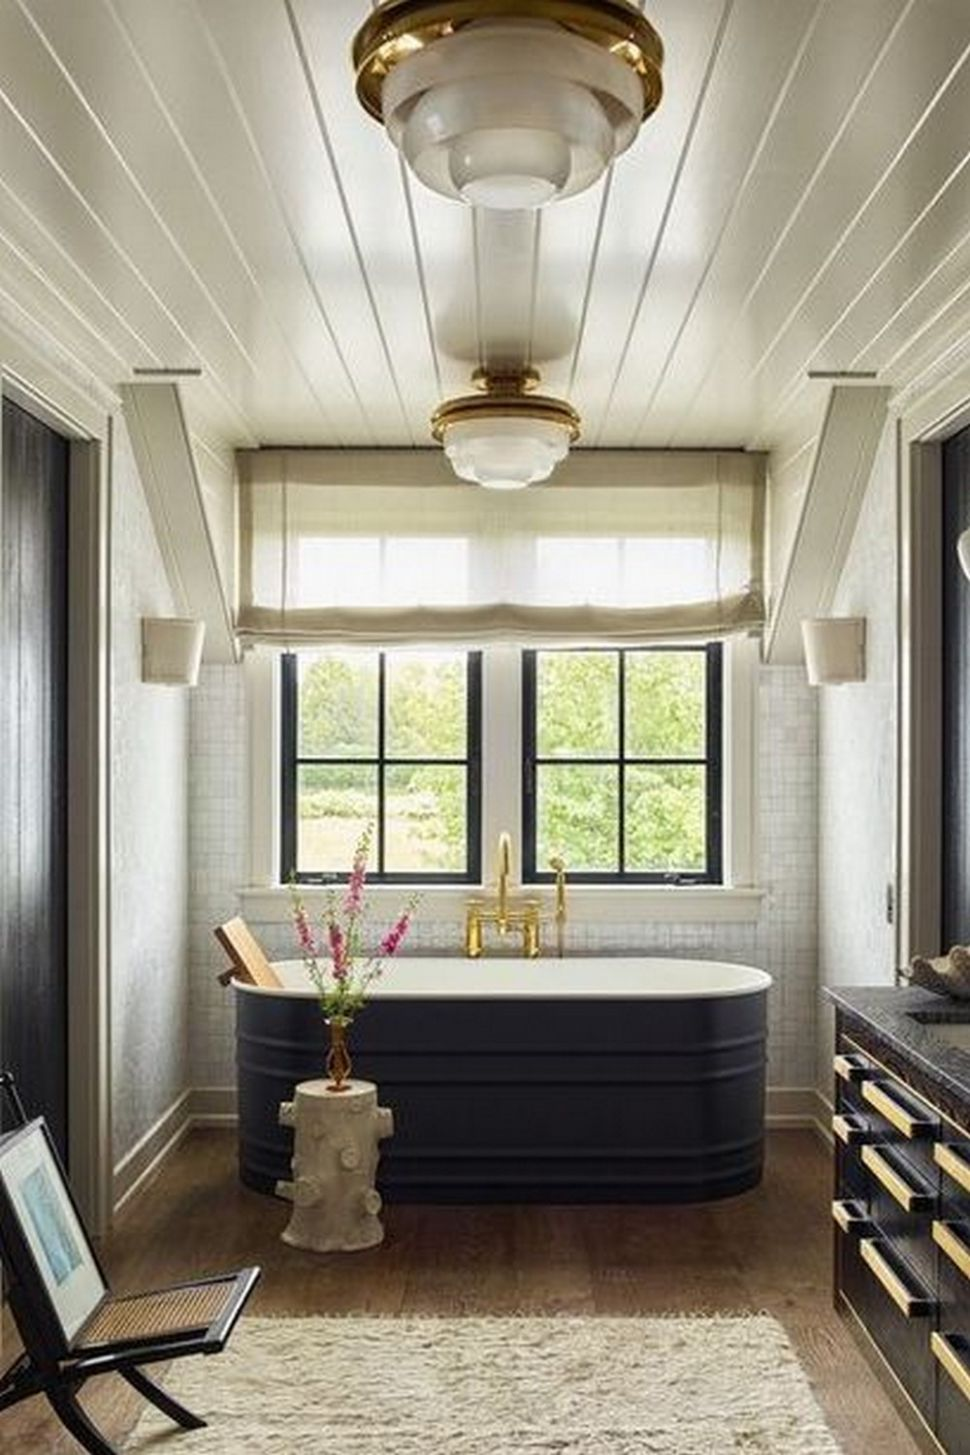 Elle Decor's Hot List For The Ultimate Luxury Bathroom – Interior ...